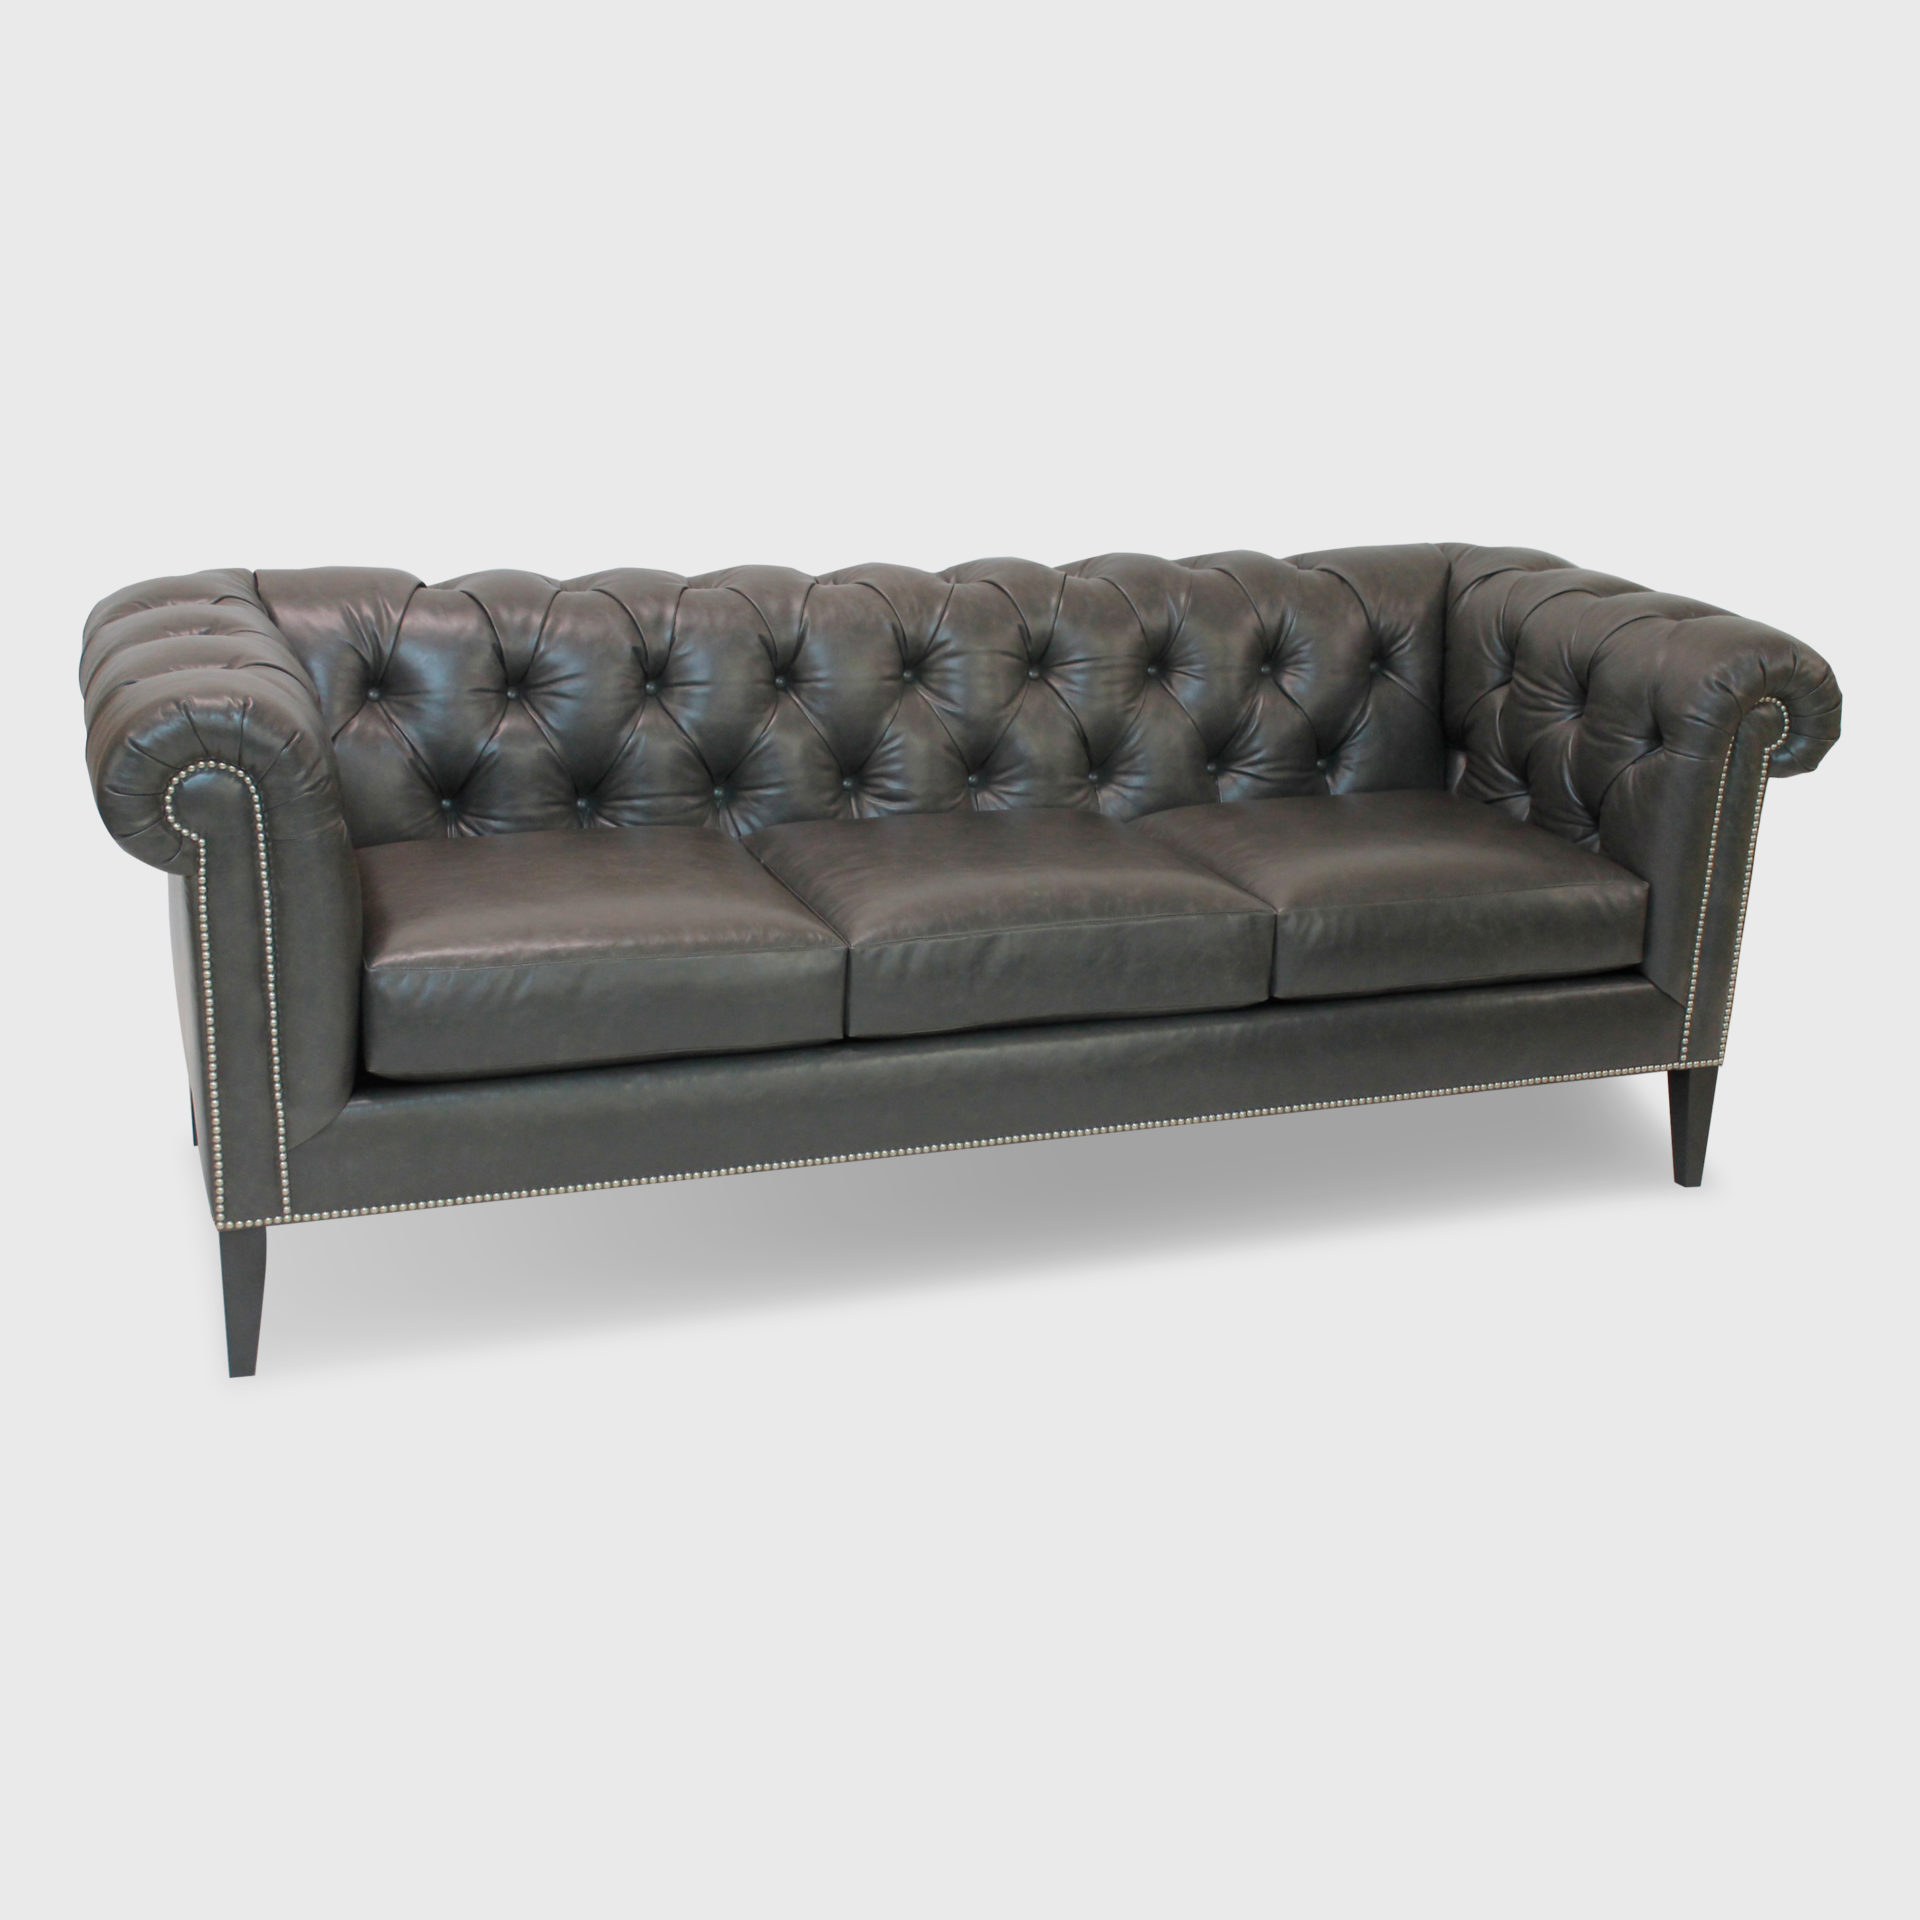 baker leather sofas abbyson living braylen top grain reclining sofa street jamie stern design